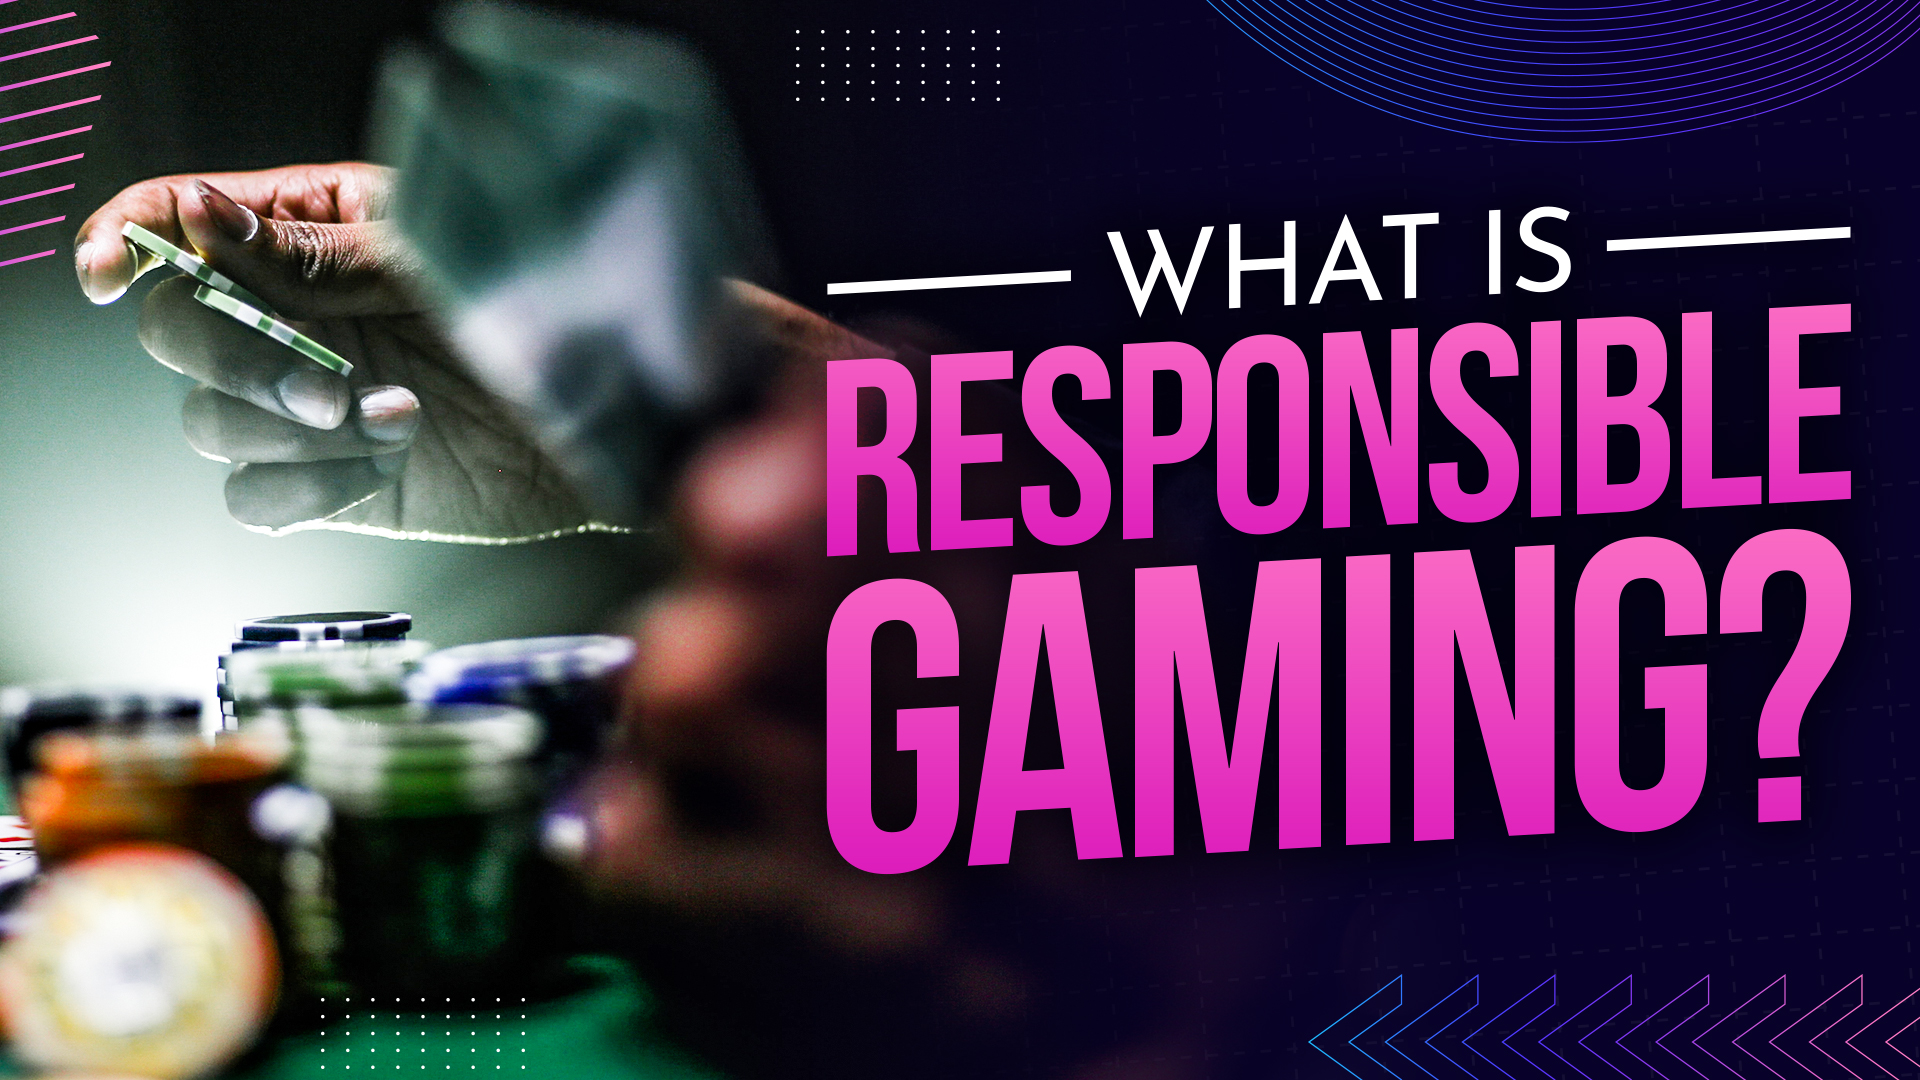 What is responsible gaming?